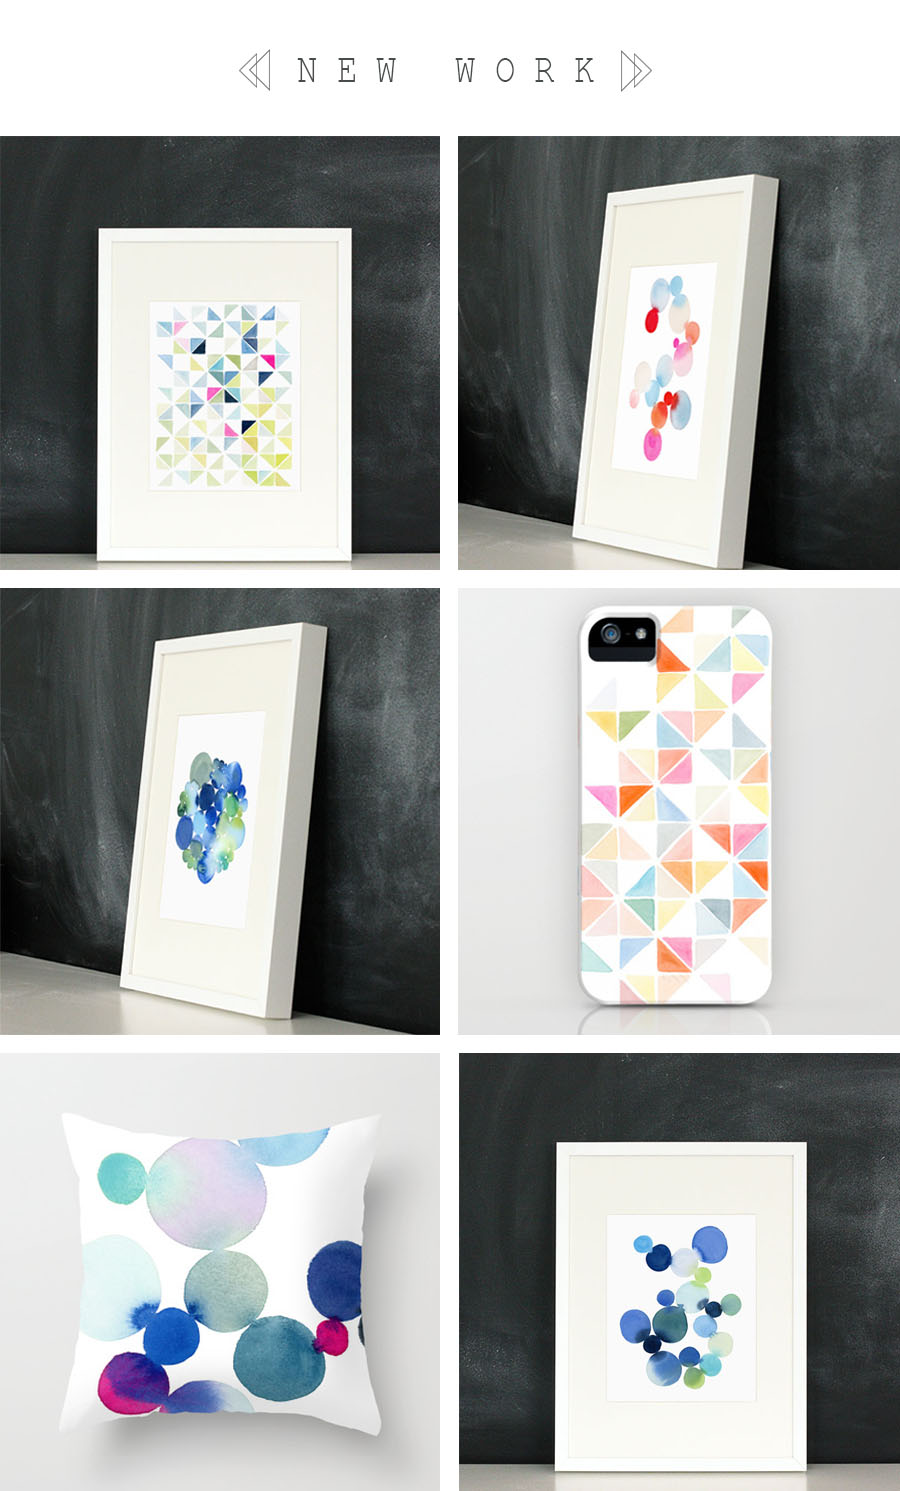 Sources// Multi Triangles in Blue and Pink // Dot Cluster in Red and Blue // Compact Cluster of Dots // Multi Triangles Iphone // Dot Cluster Pillow Case // Dot Cluster in Blue